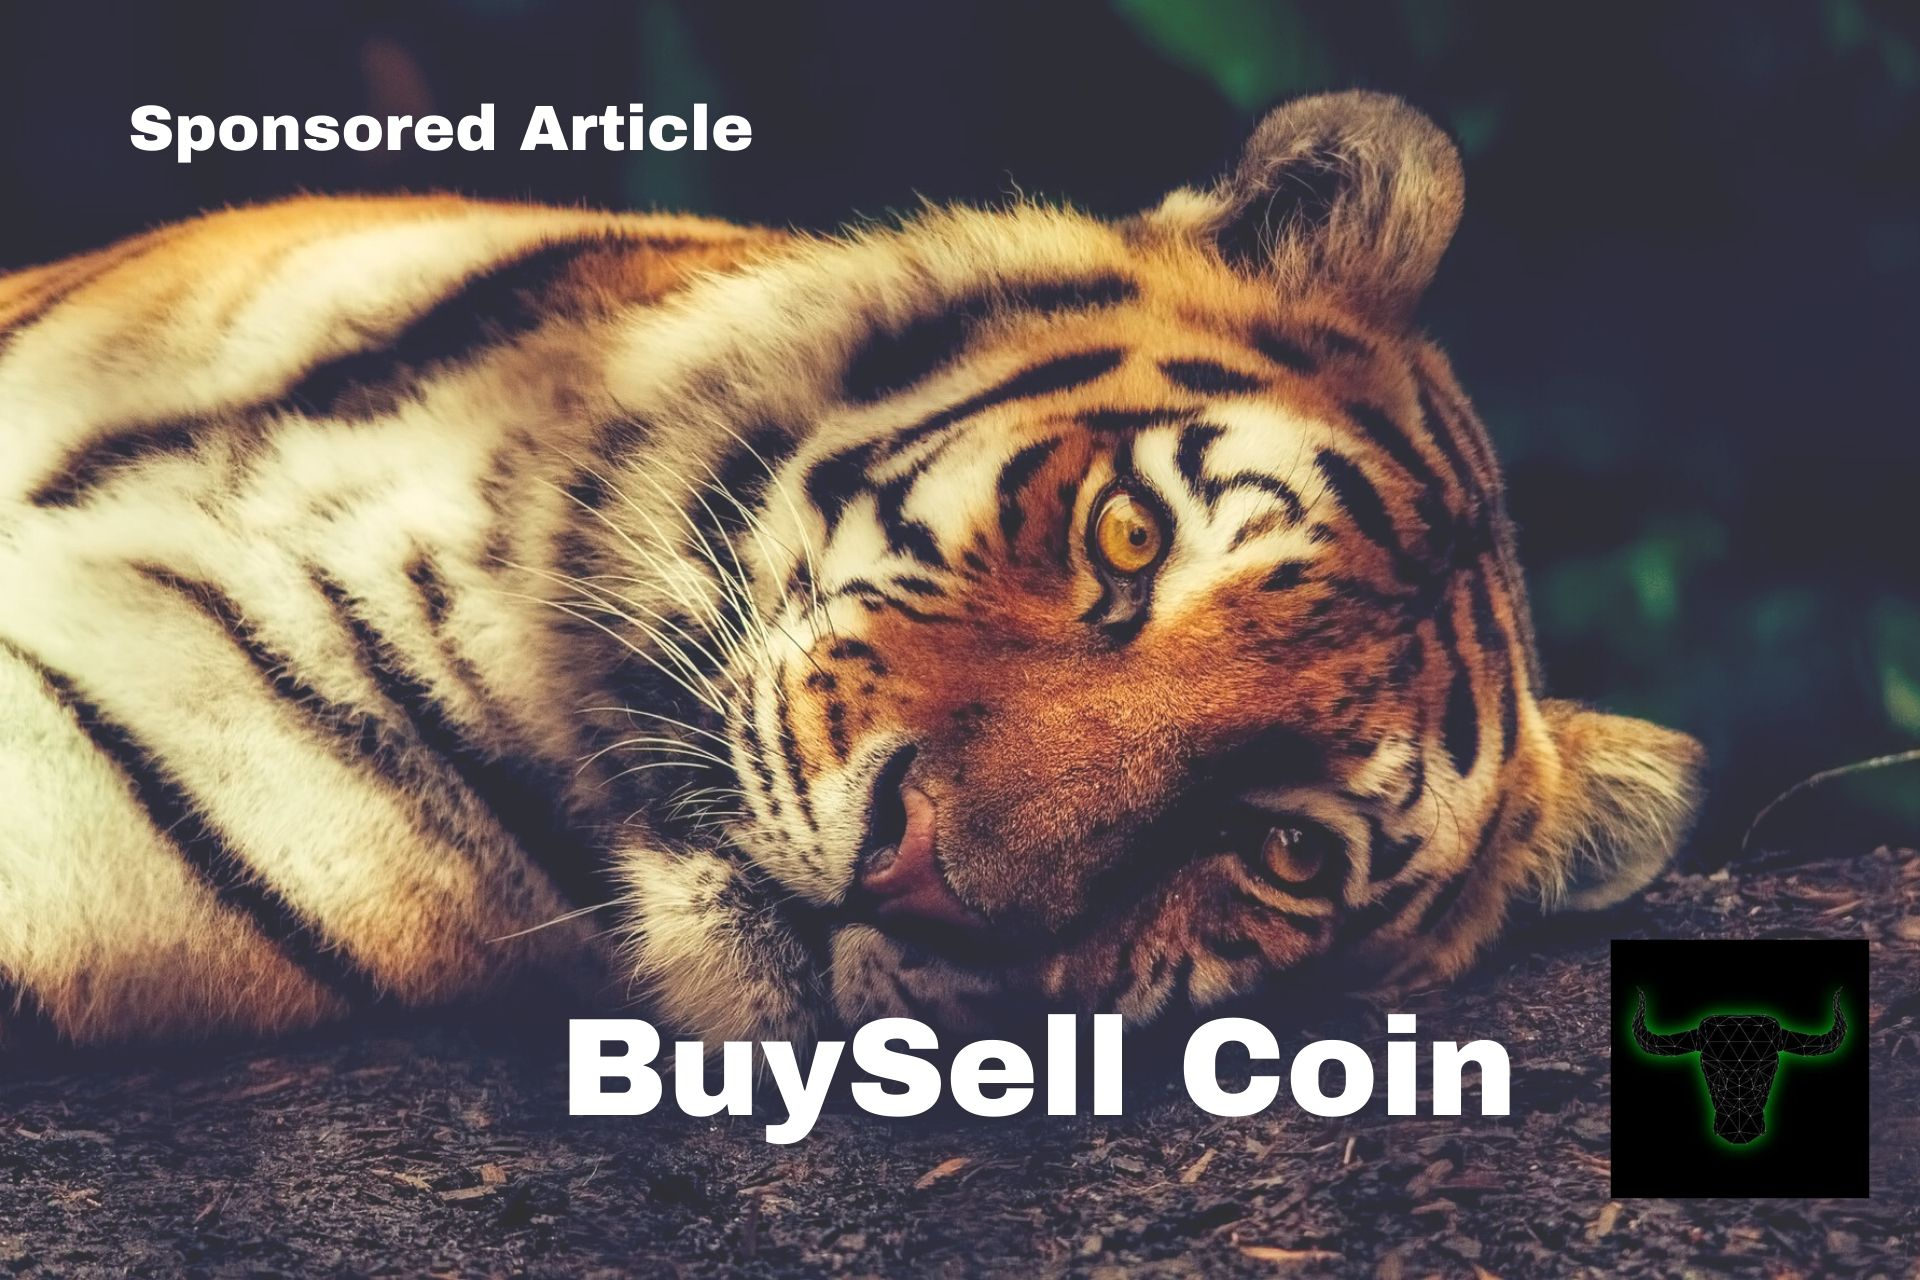 BuySell Coin